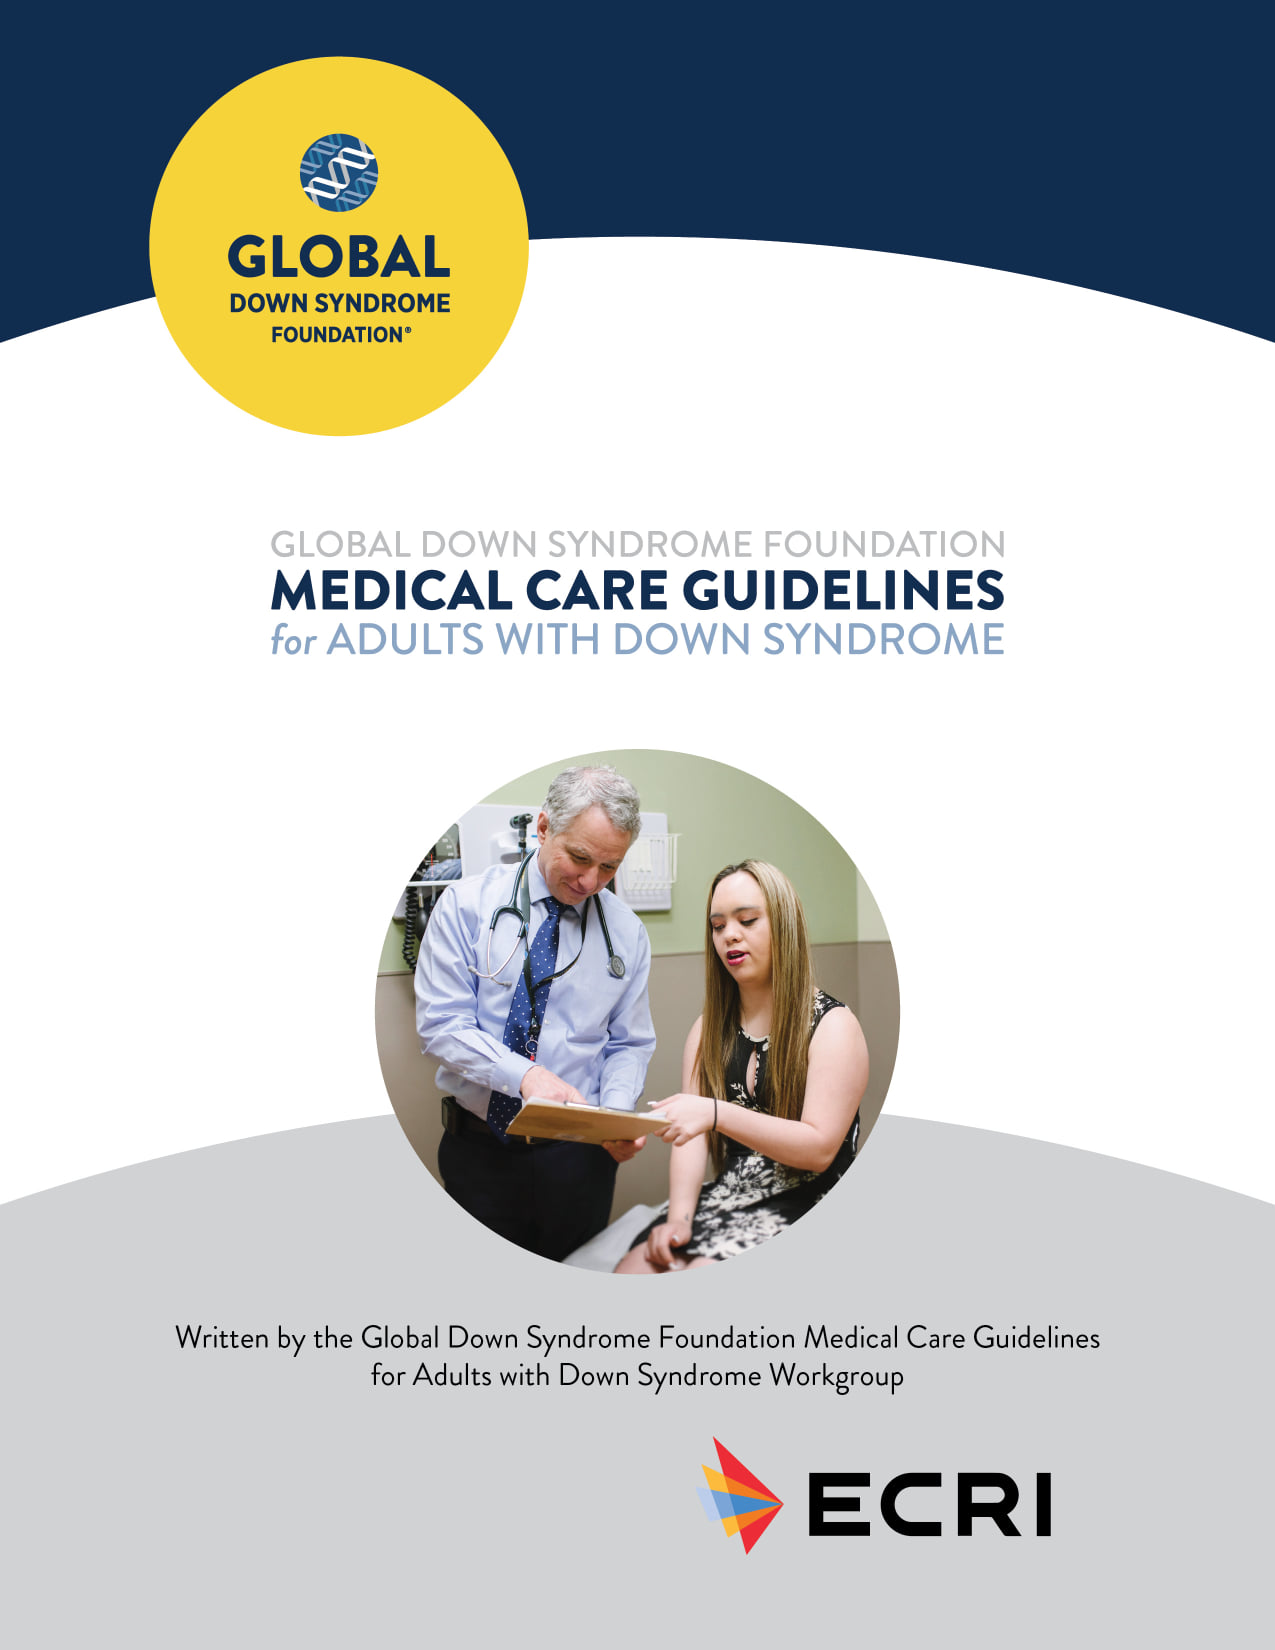 GLOBAL Medical Care Guidelines for Adults with Down Syndrome